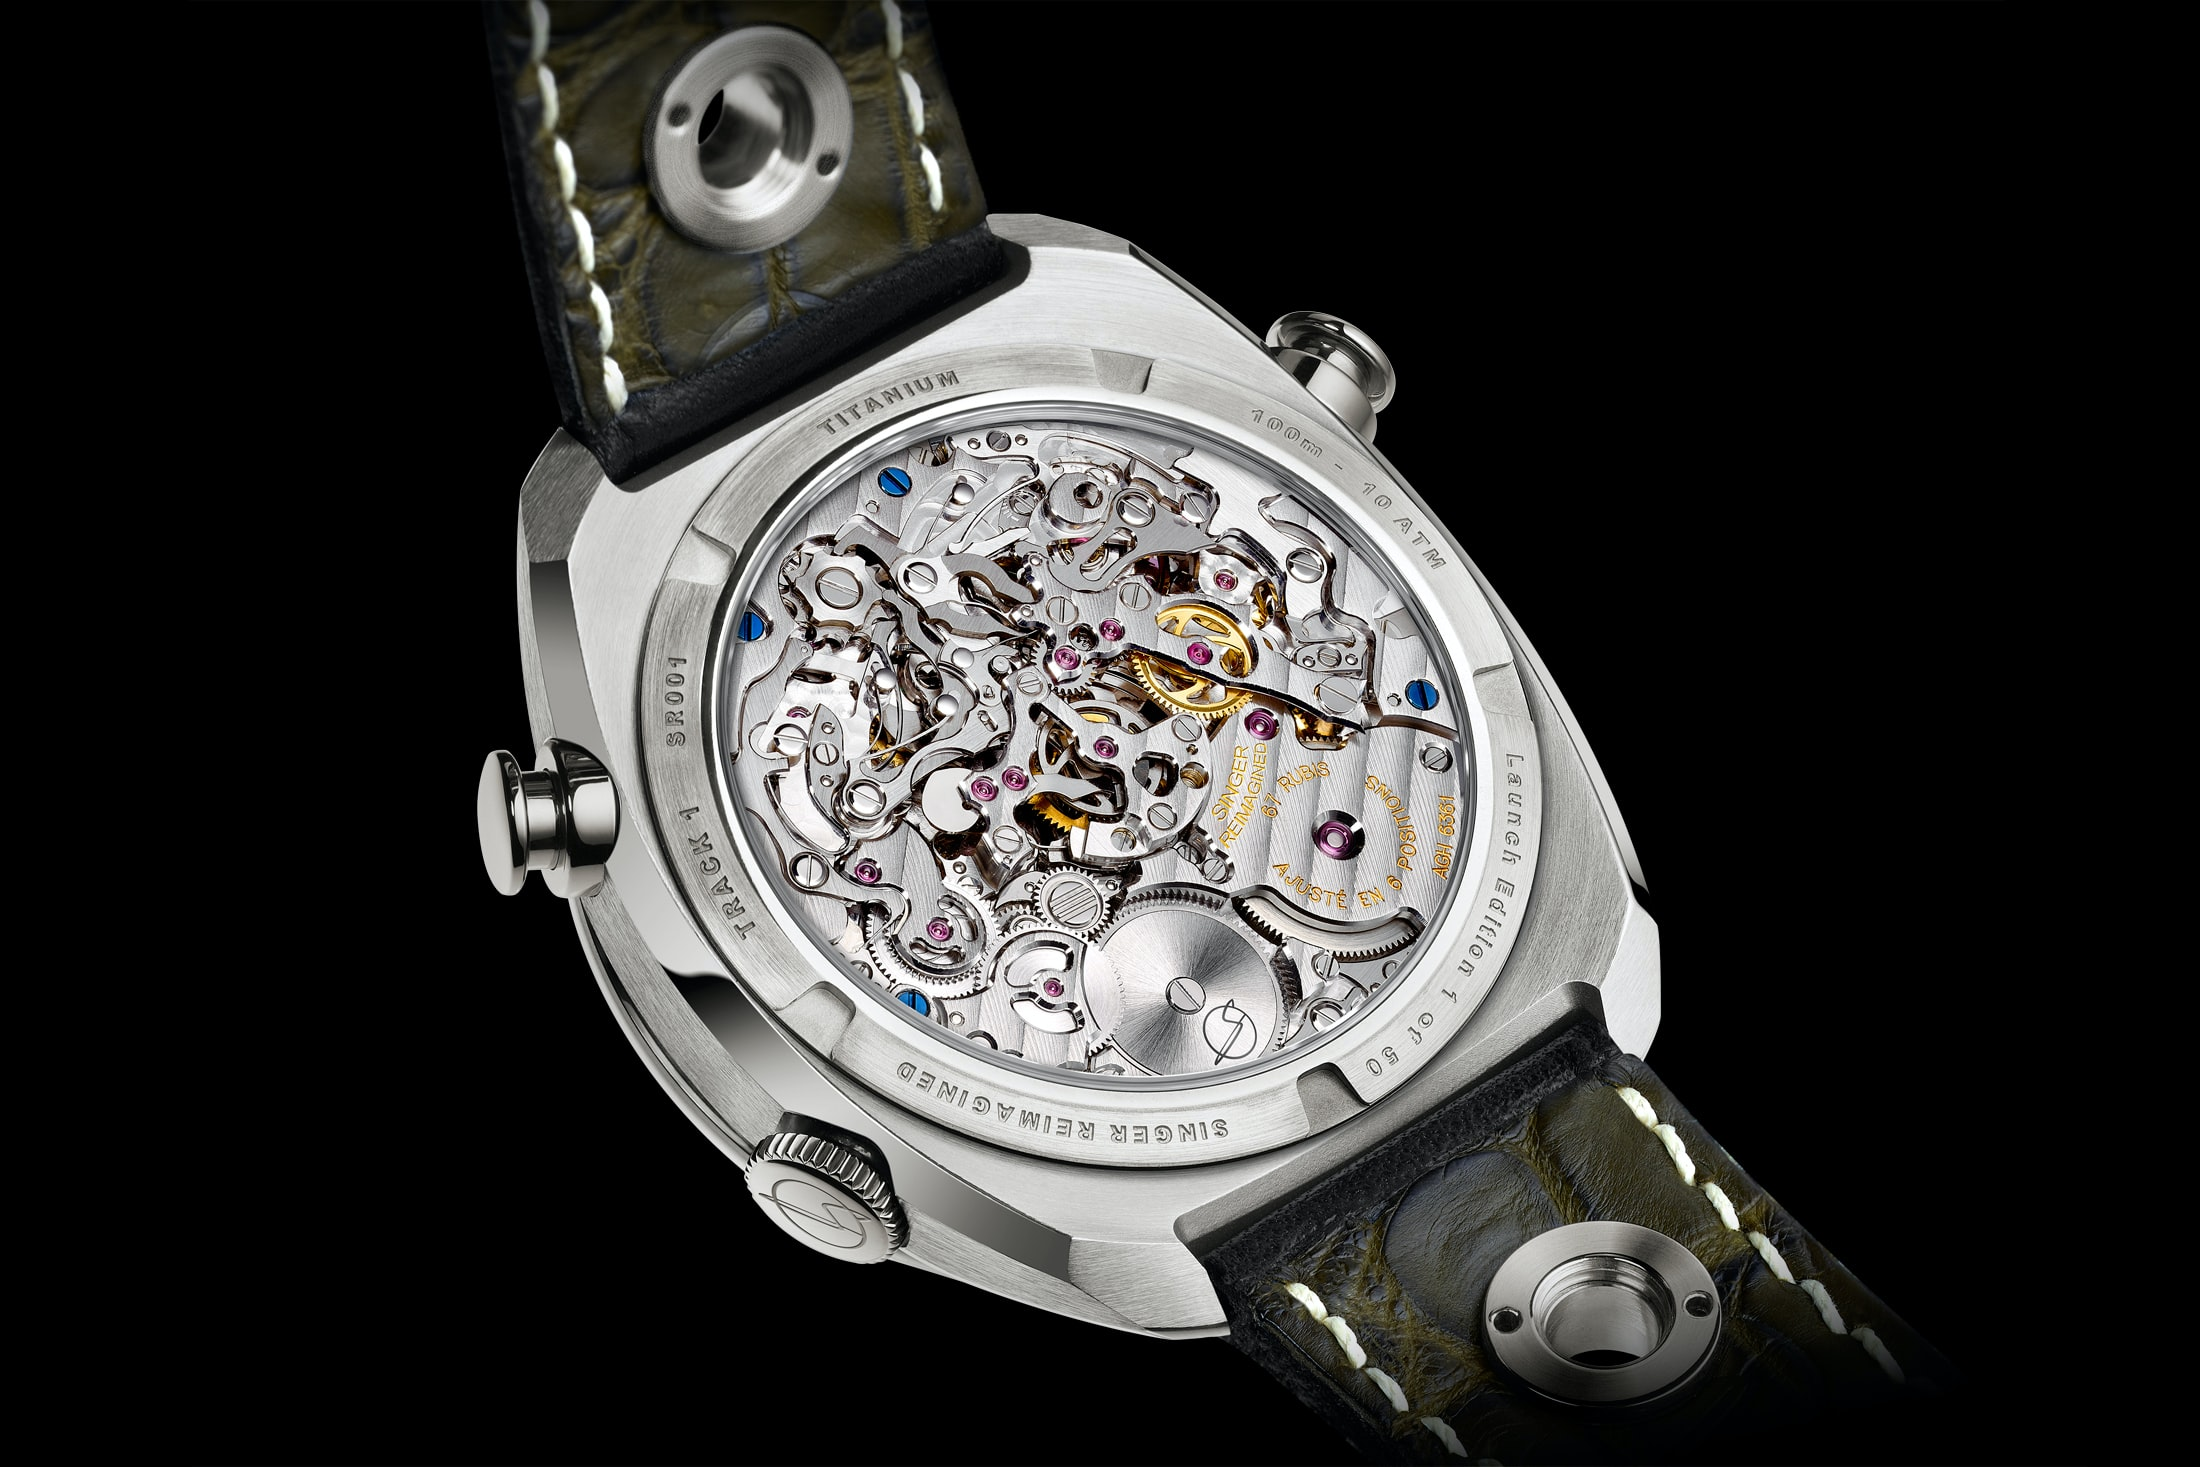 singer track1 chronograph agengraphe movement Introducing: The Singer Track1 Chronograph, Featuring The AgenGraphe Caliber By Jean-Marc Wiederrecht Introducing: The Singer Track1 Chronograph, Featuring The AgenGraphe Caliber By Jean-Marc Wiederrecht singer 06